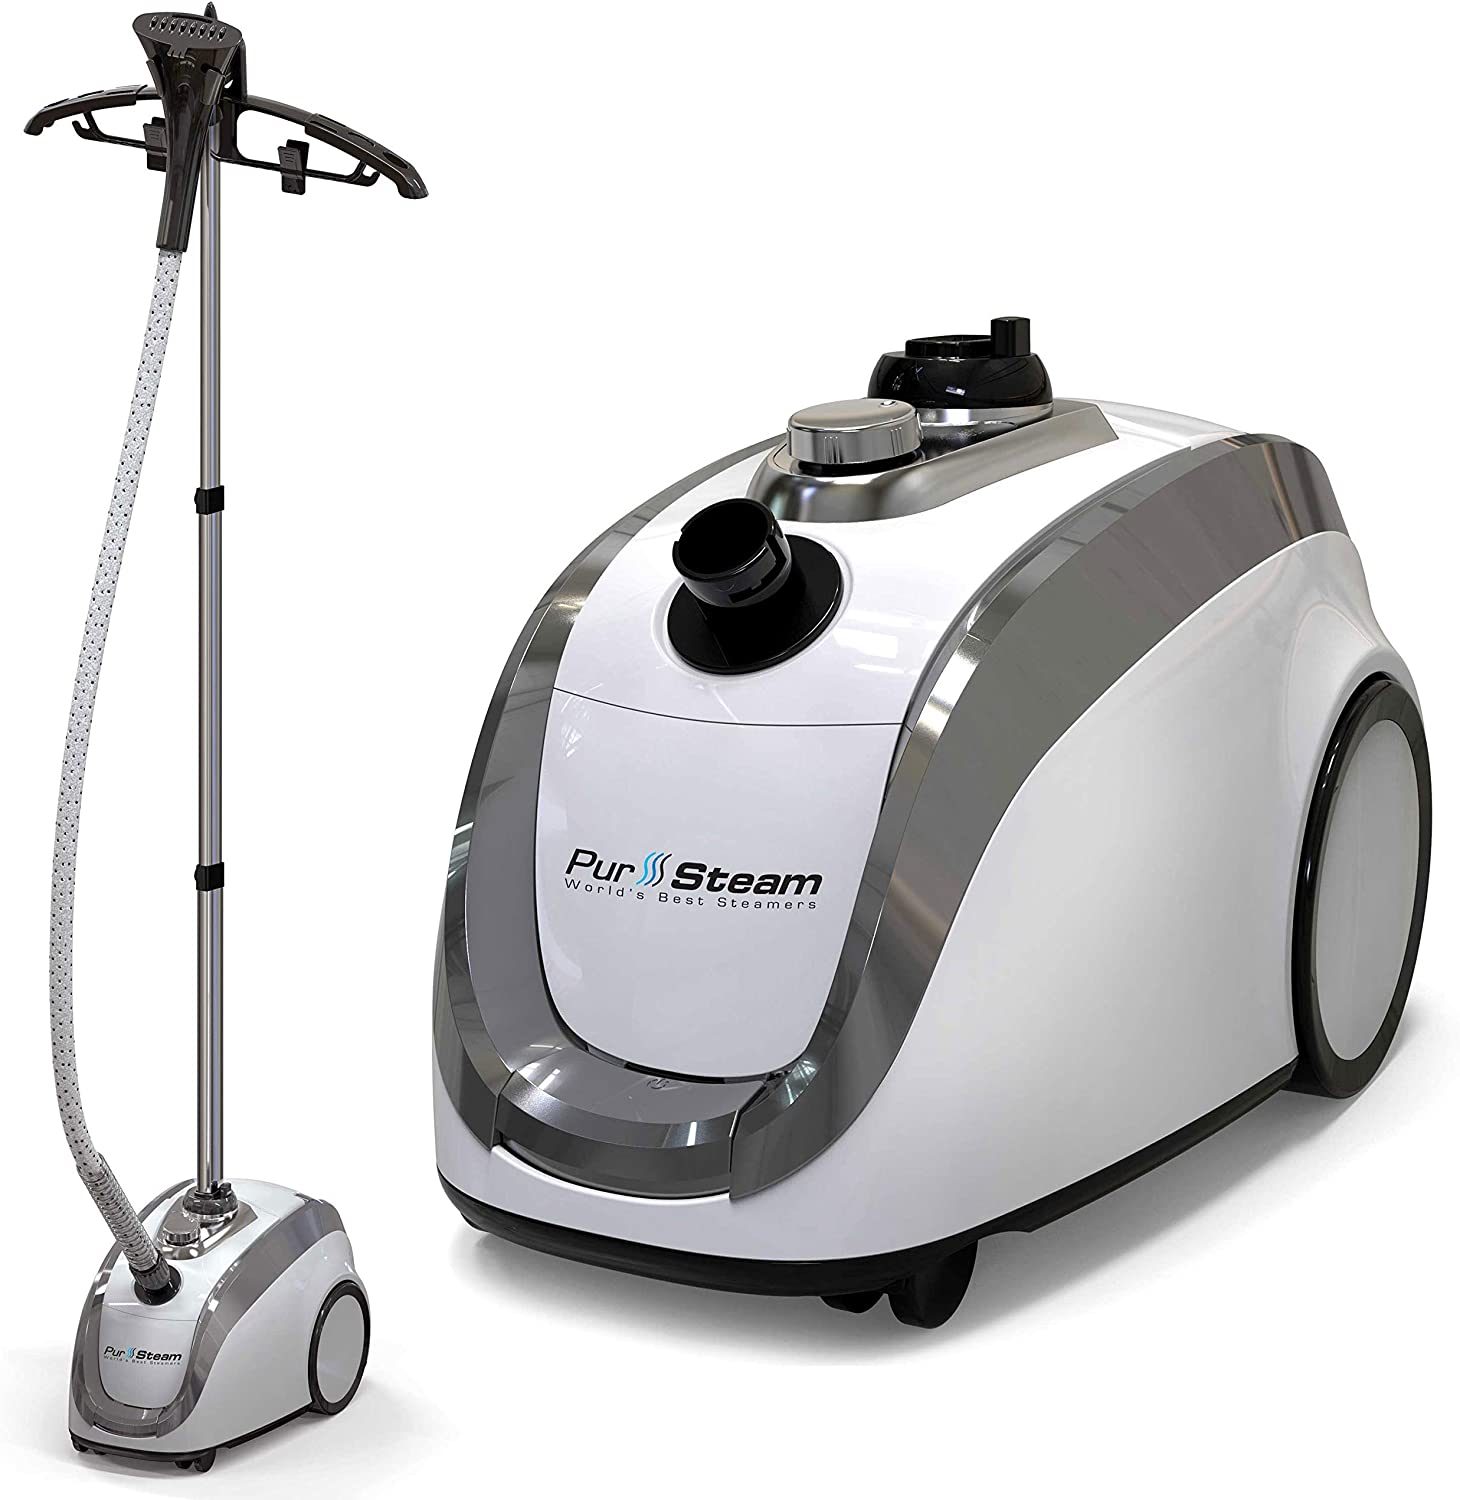 Amazon.com: PurSteam -2020 Official Partner of Fashion-Full Size Steamer  for Clothes, Garments, Fabric-Professional Heavy Duty - 4 Steam Levels,  Perfect Continuous Steam: Home & Kitchen